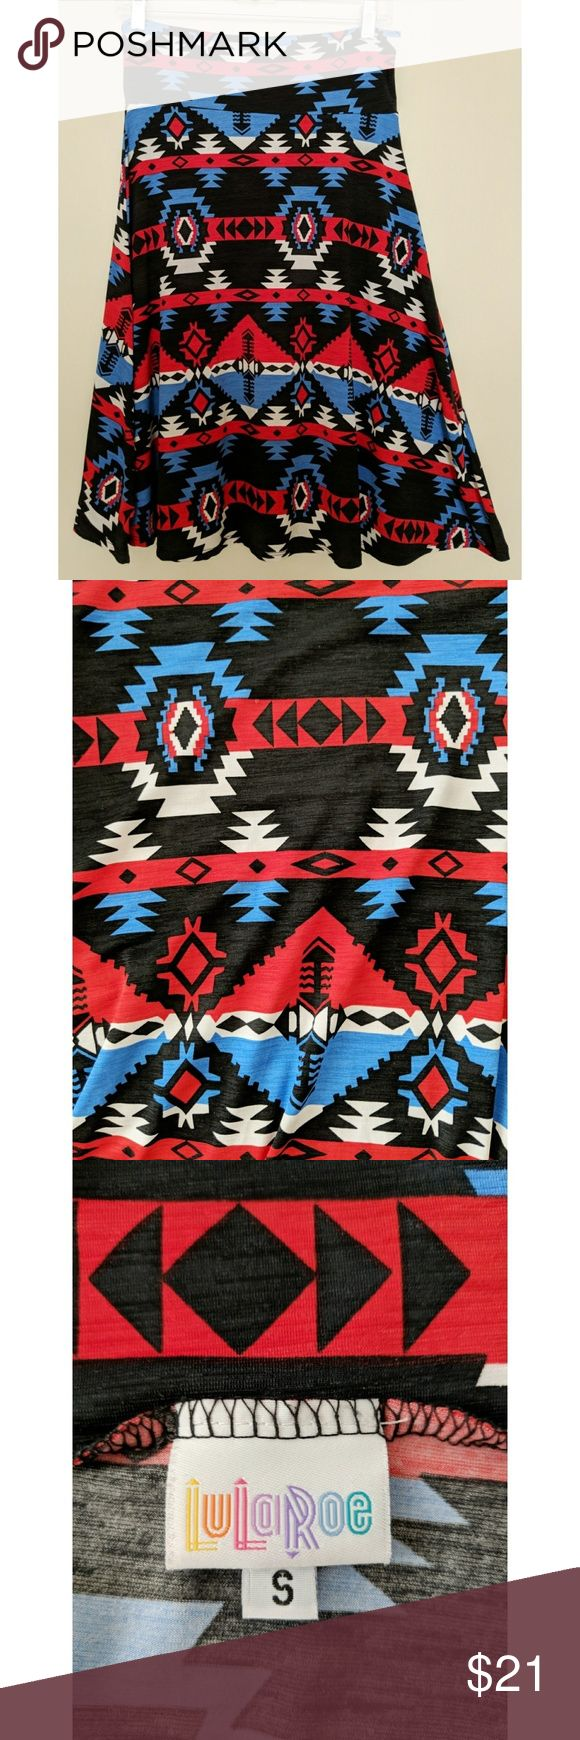 LuLaRoe Azure Skirt - Size S - EUC LuLaRoe Azure Skirt - Size S - Excellent Used Condition (EUC)  Knee-length, A-line skirt. Knit fabric. Flattering fold-over waist. Aztec / tribal / southwestern print.  Materials:  96% spun polyester, 4% spandex  Color: Black, red, white, blue  Machine wash cold  No stains, holes, or other damage LuLaRoe Skirts A-Line or Full